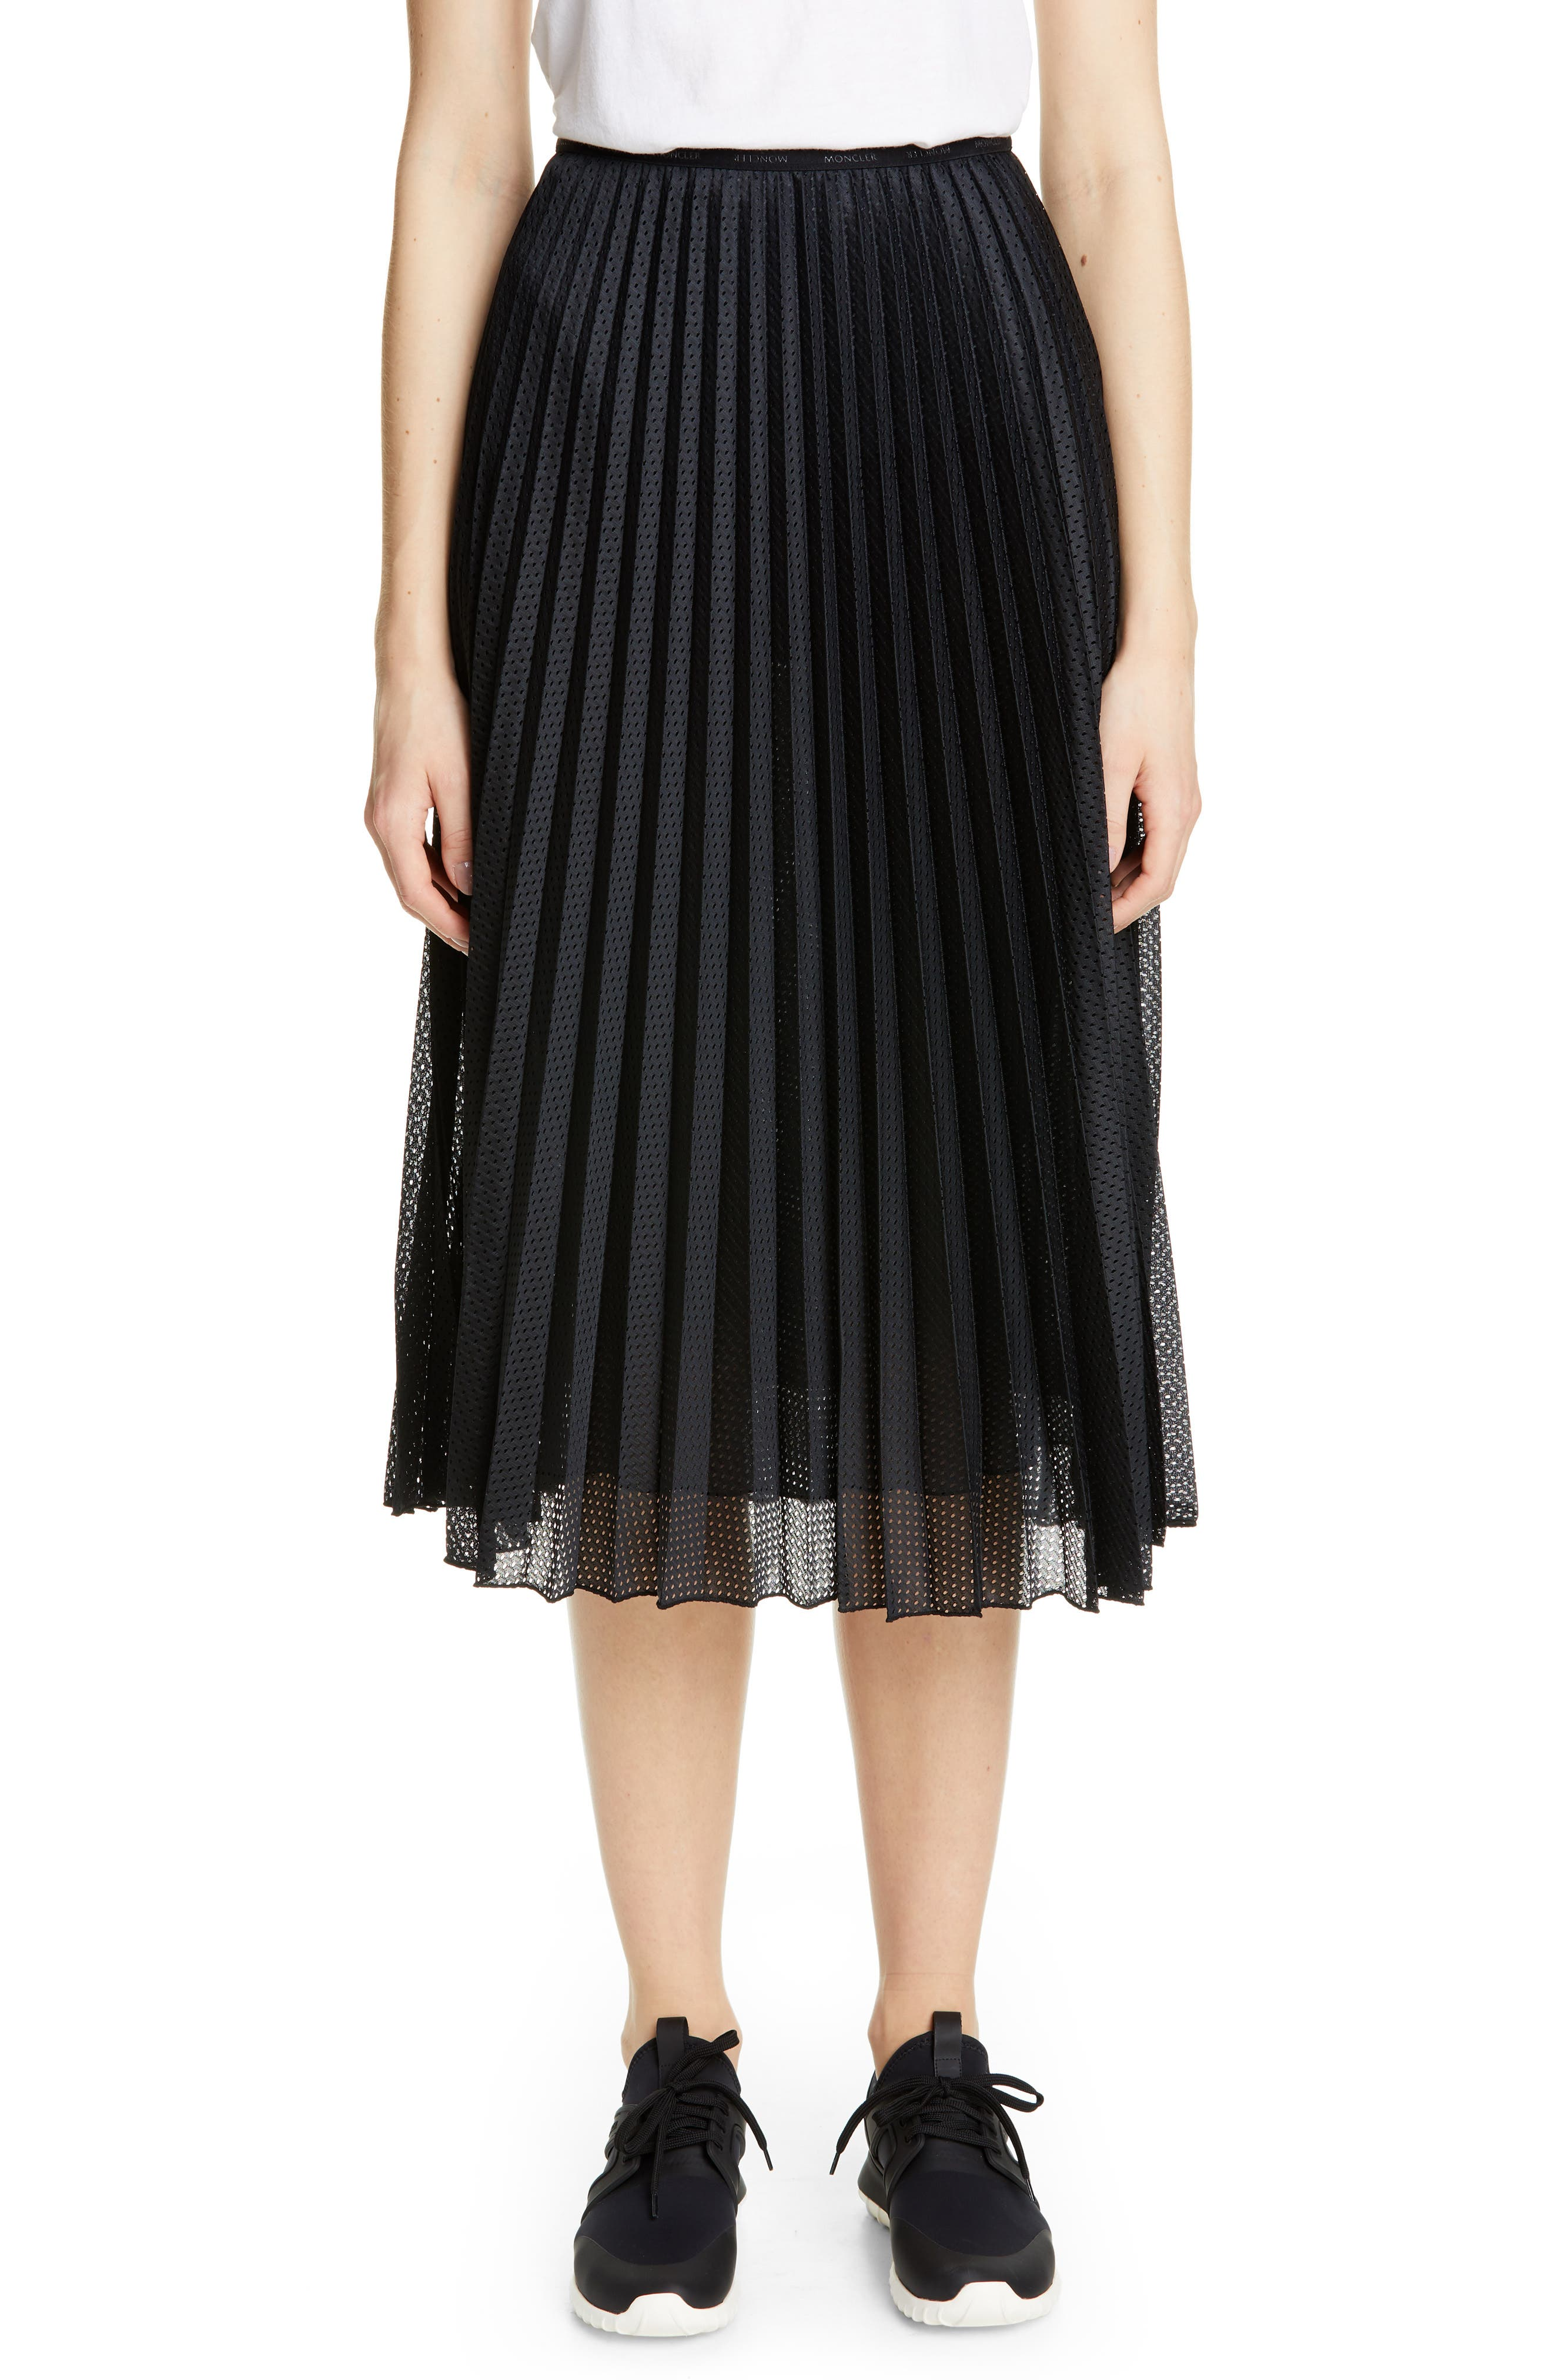 MONCLER Pleated Mesh Skirt, Main, color, 001